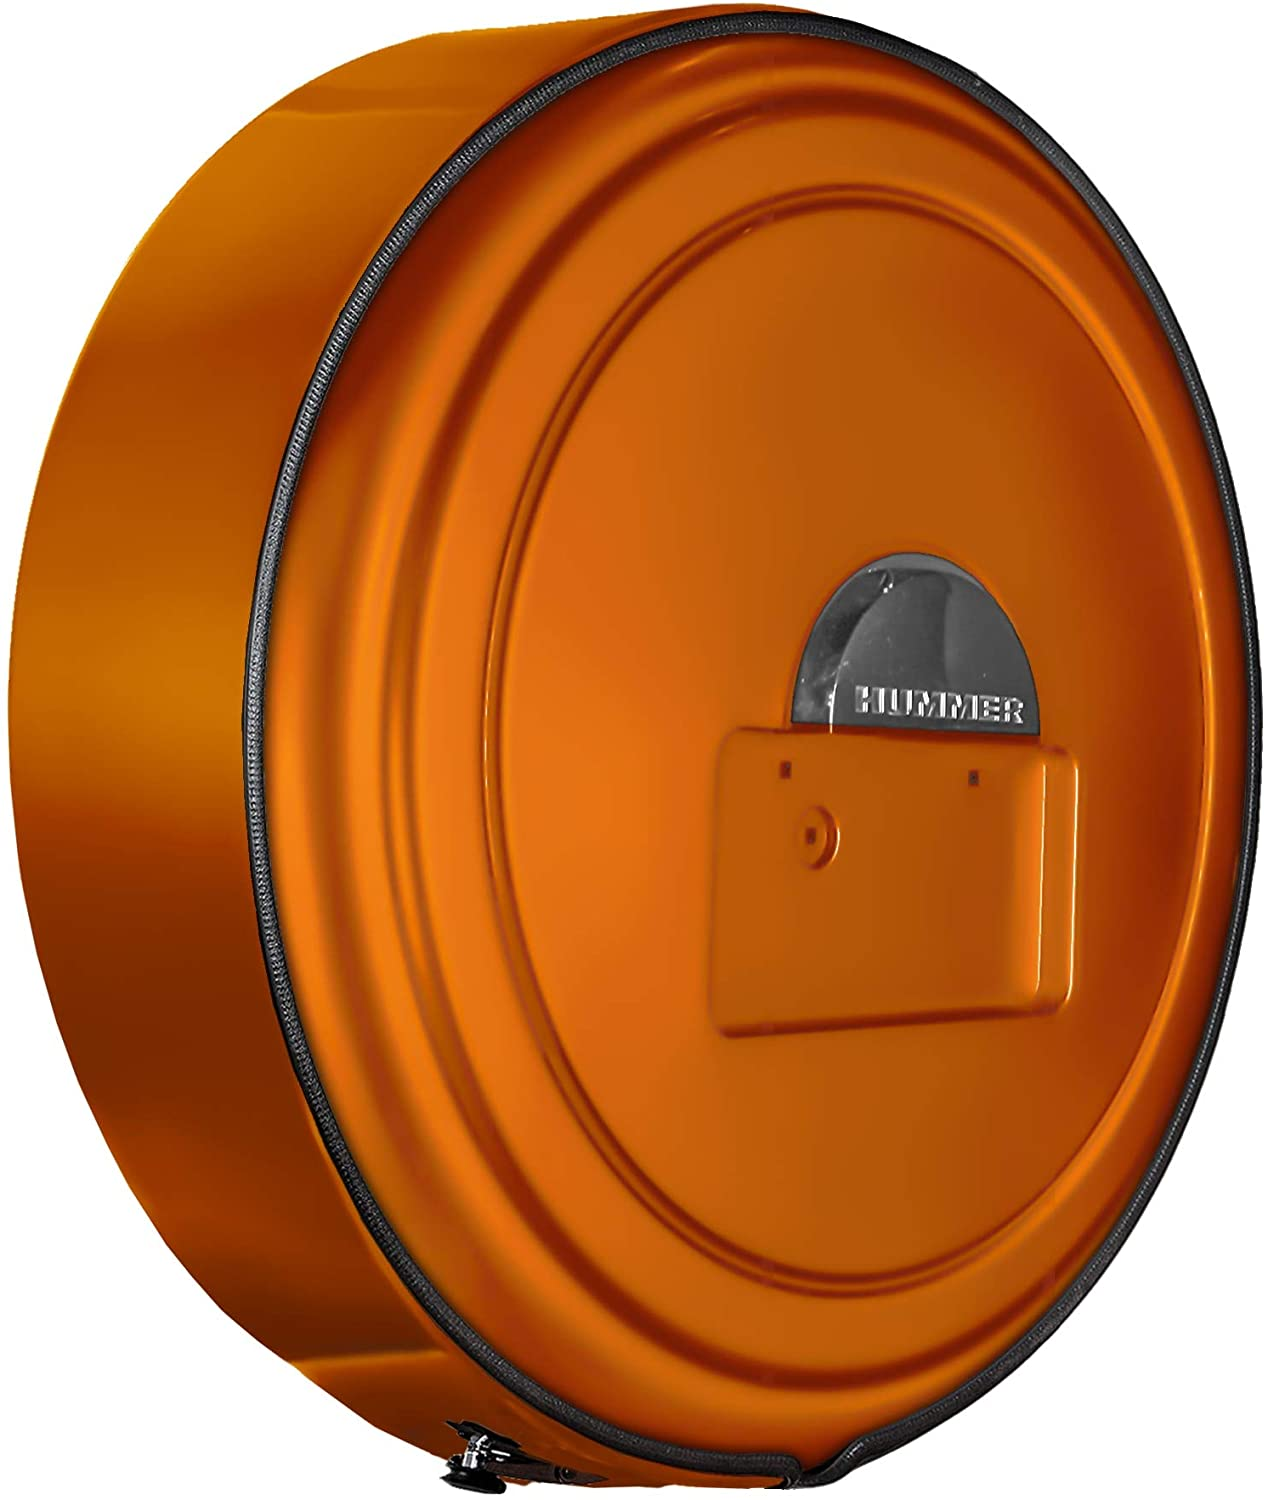 Boomerang Hummer H2 (05-10) - Color Matched MasterSeries Hard Tire Cover - (Color Matched Plastic Face & Stainless Steel Ring) - Fusion Orange